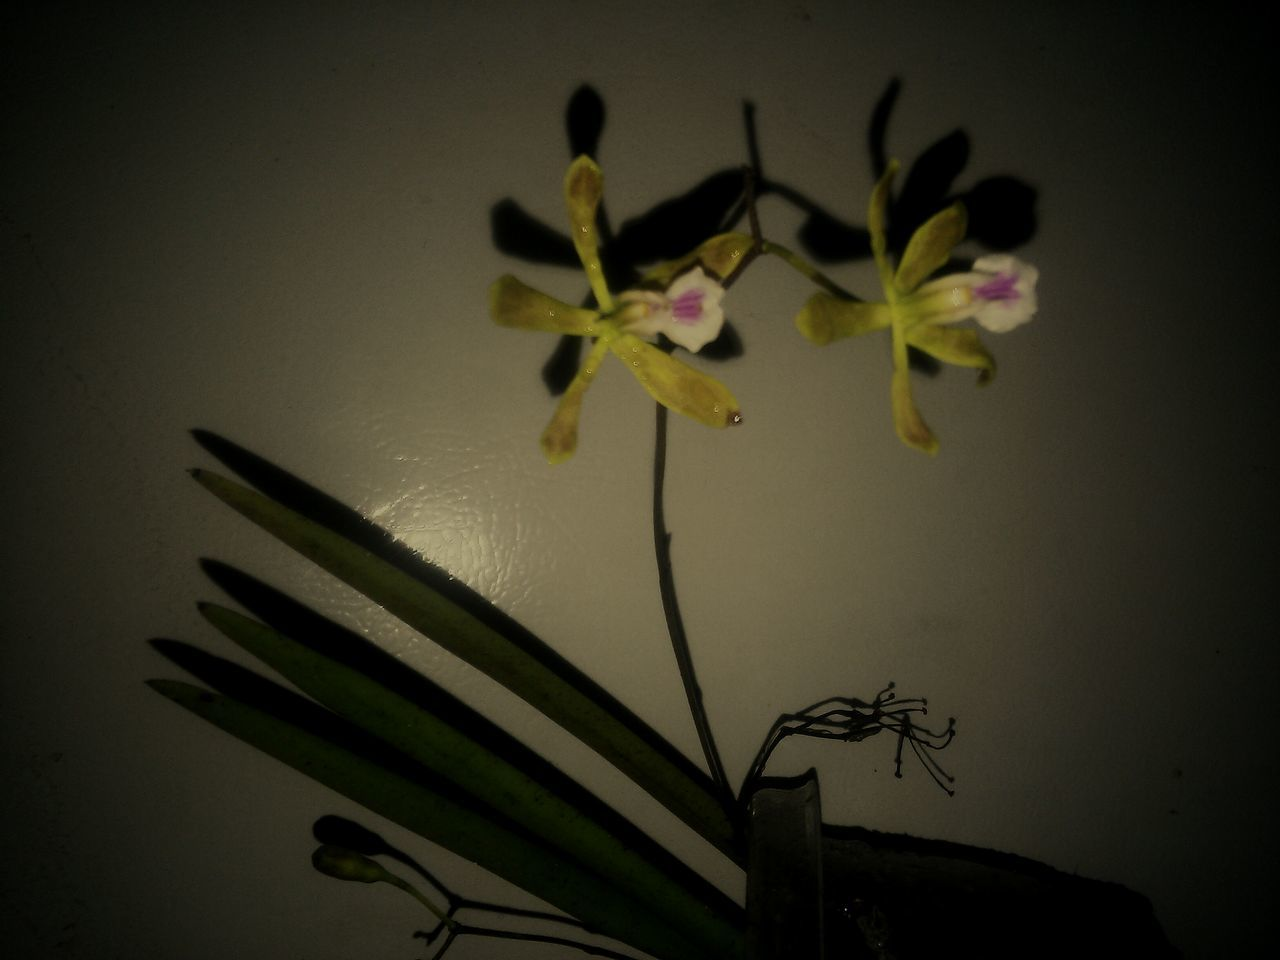 Flower Plant No People Fragility Indoors  Nature Close-up Orchids Photography Themes Chase Just Being Me My Artwork Expressionism Artphotography Artistic Expression Florida Nature Shadows And Light